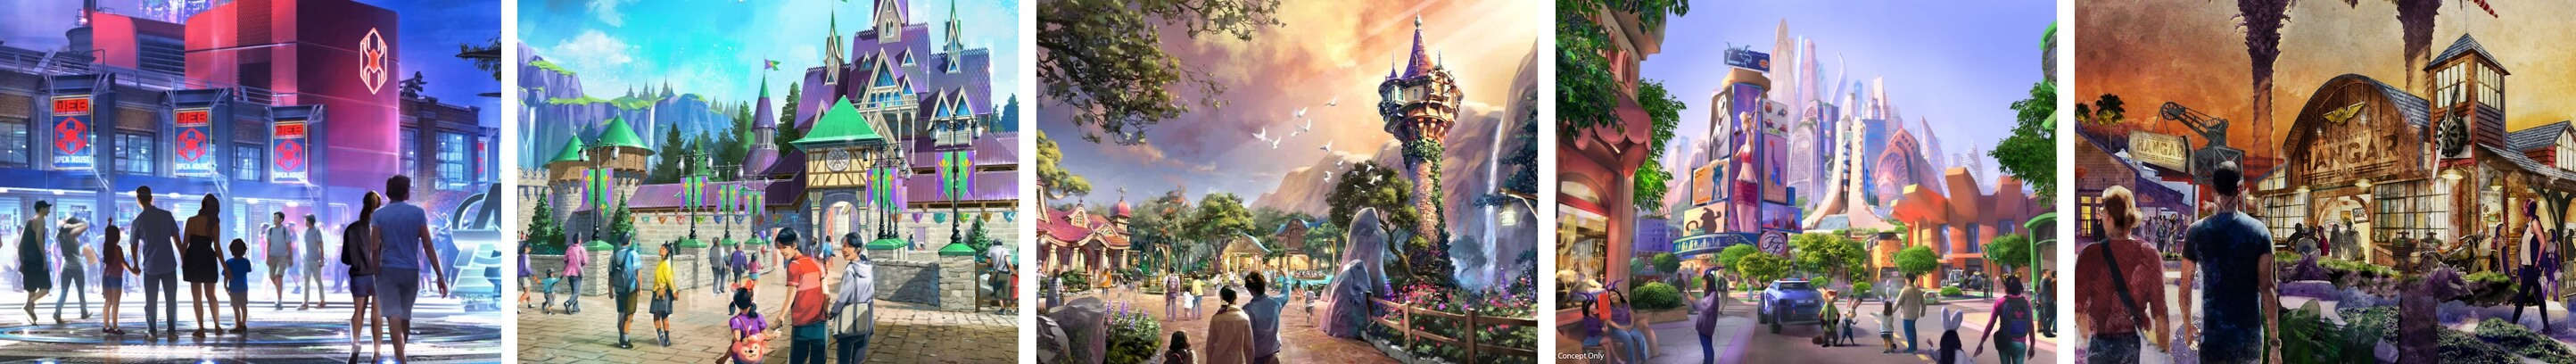 Artist rendering of the soon to arrive Avengers headquarters. Artist rendering of Arendelle and Anna and Elsa's castle. Artist rendering of Rapunzel's tower in new land. Artist rendering of the of Zootopia City Center for coming Disney Park attractions. Artist rendering - gathering space welcomes visitors to dining and entertainment.